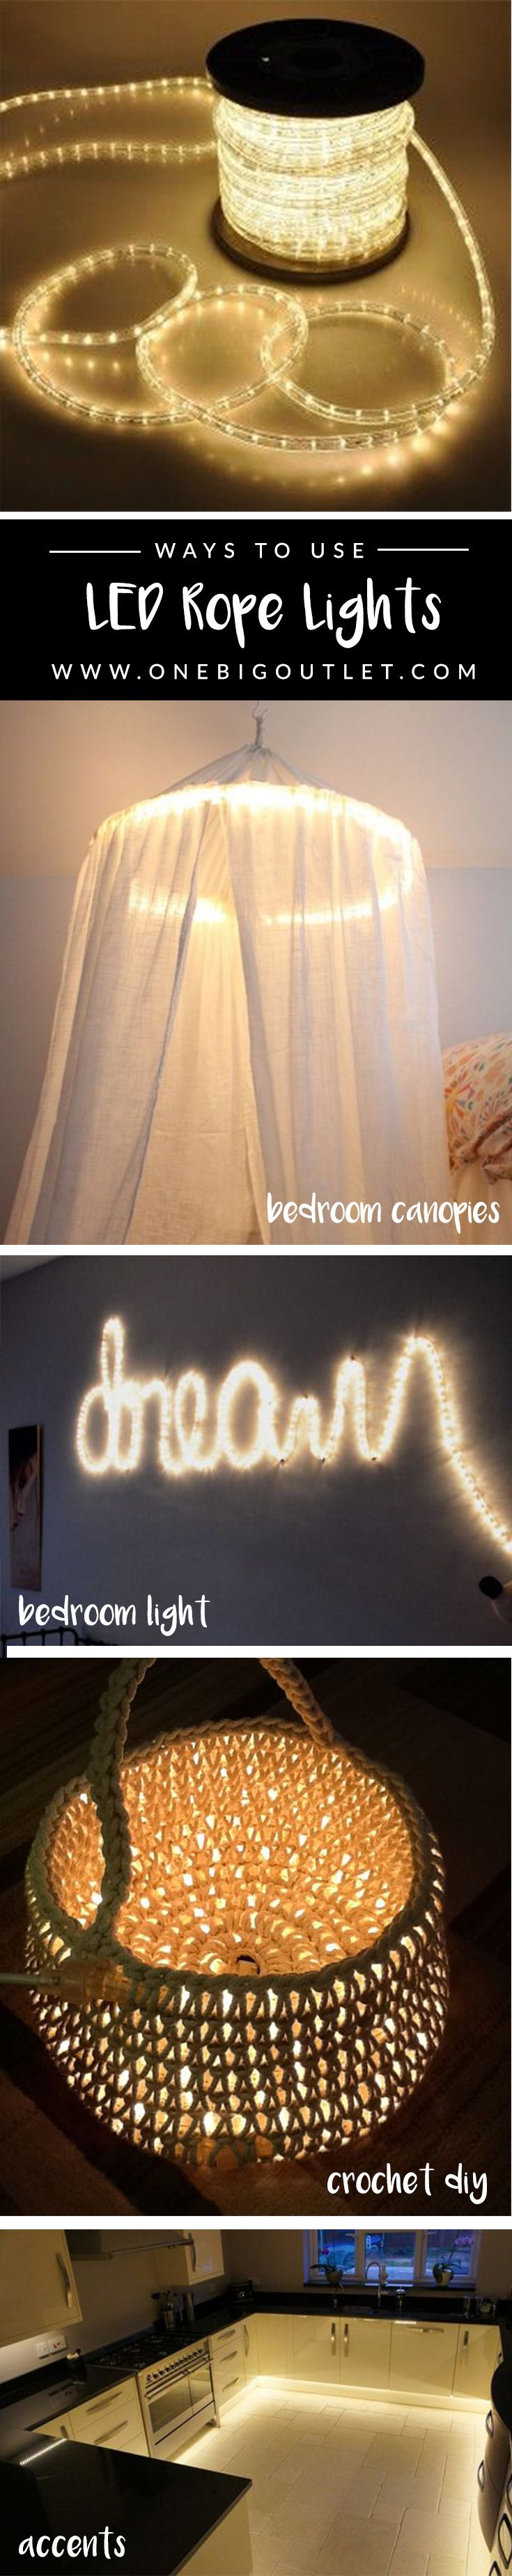 Best 25 rope lighting ideas on pinterest garden lighting rope bedroom lighting ideas home lighting ideas all using rope lights shop for them aloadofball Images